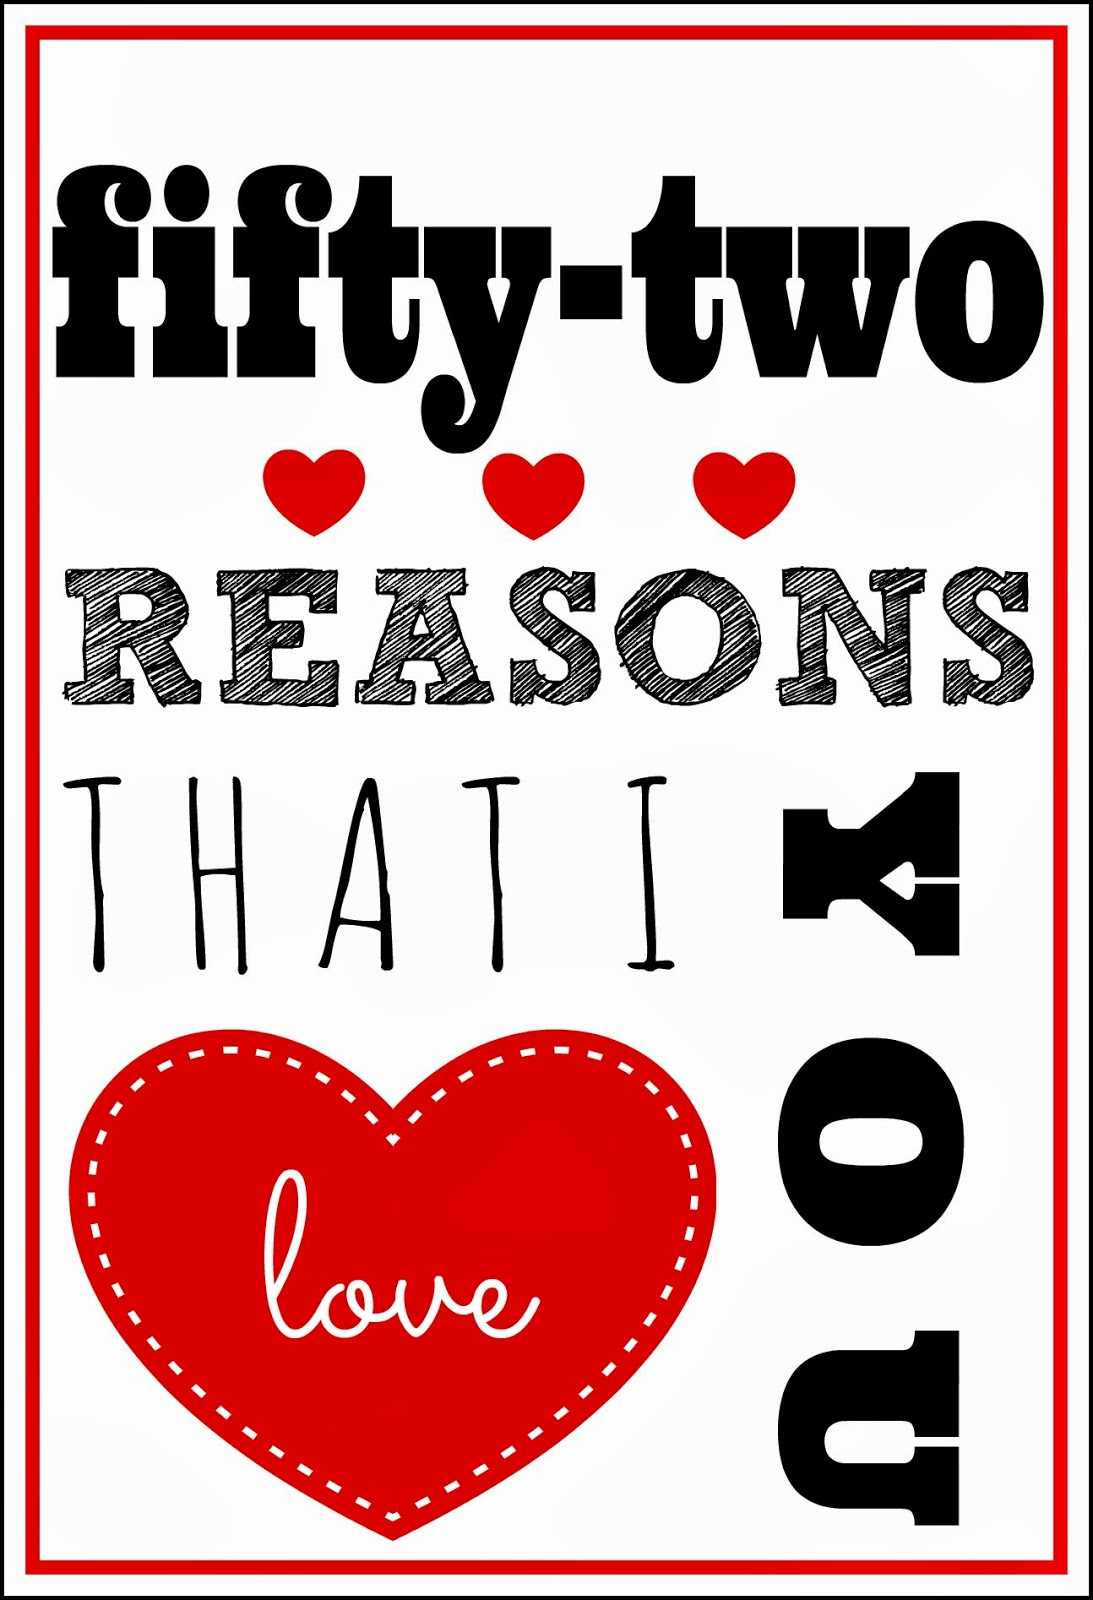 52 Reasons I Love You Template Free ] - You Will Get A Throughout 52 Reasons Why I Love You Cards Templates Free